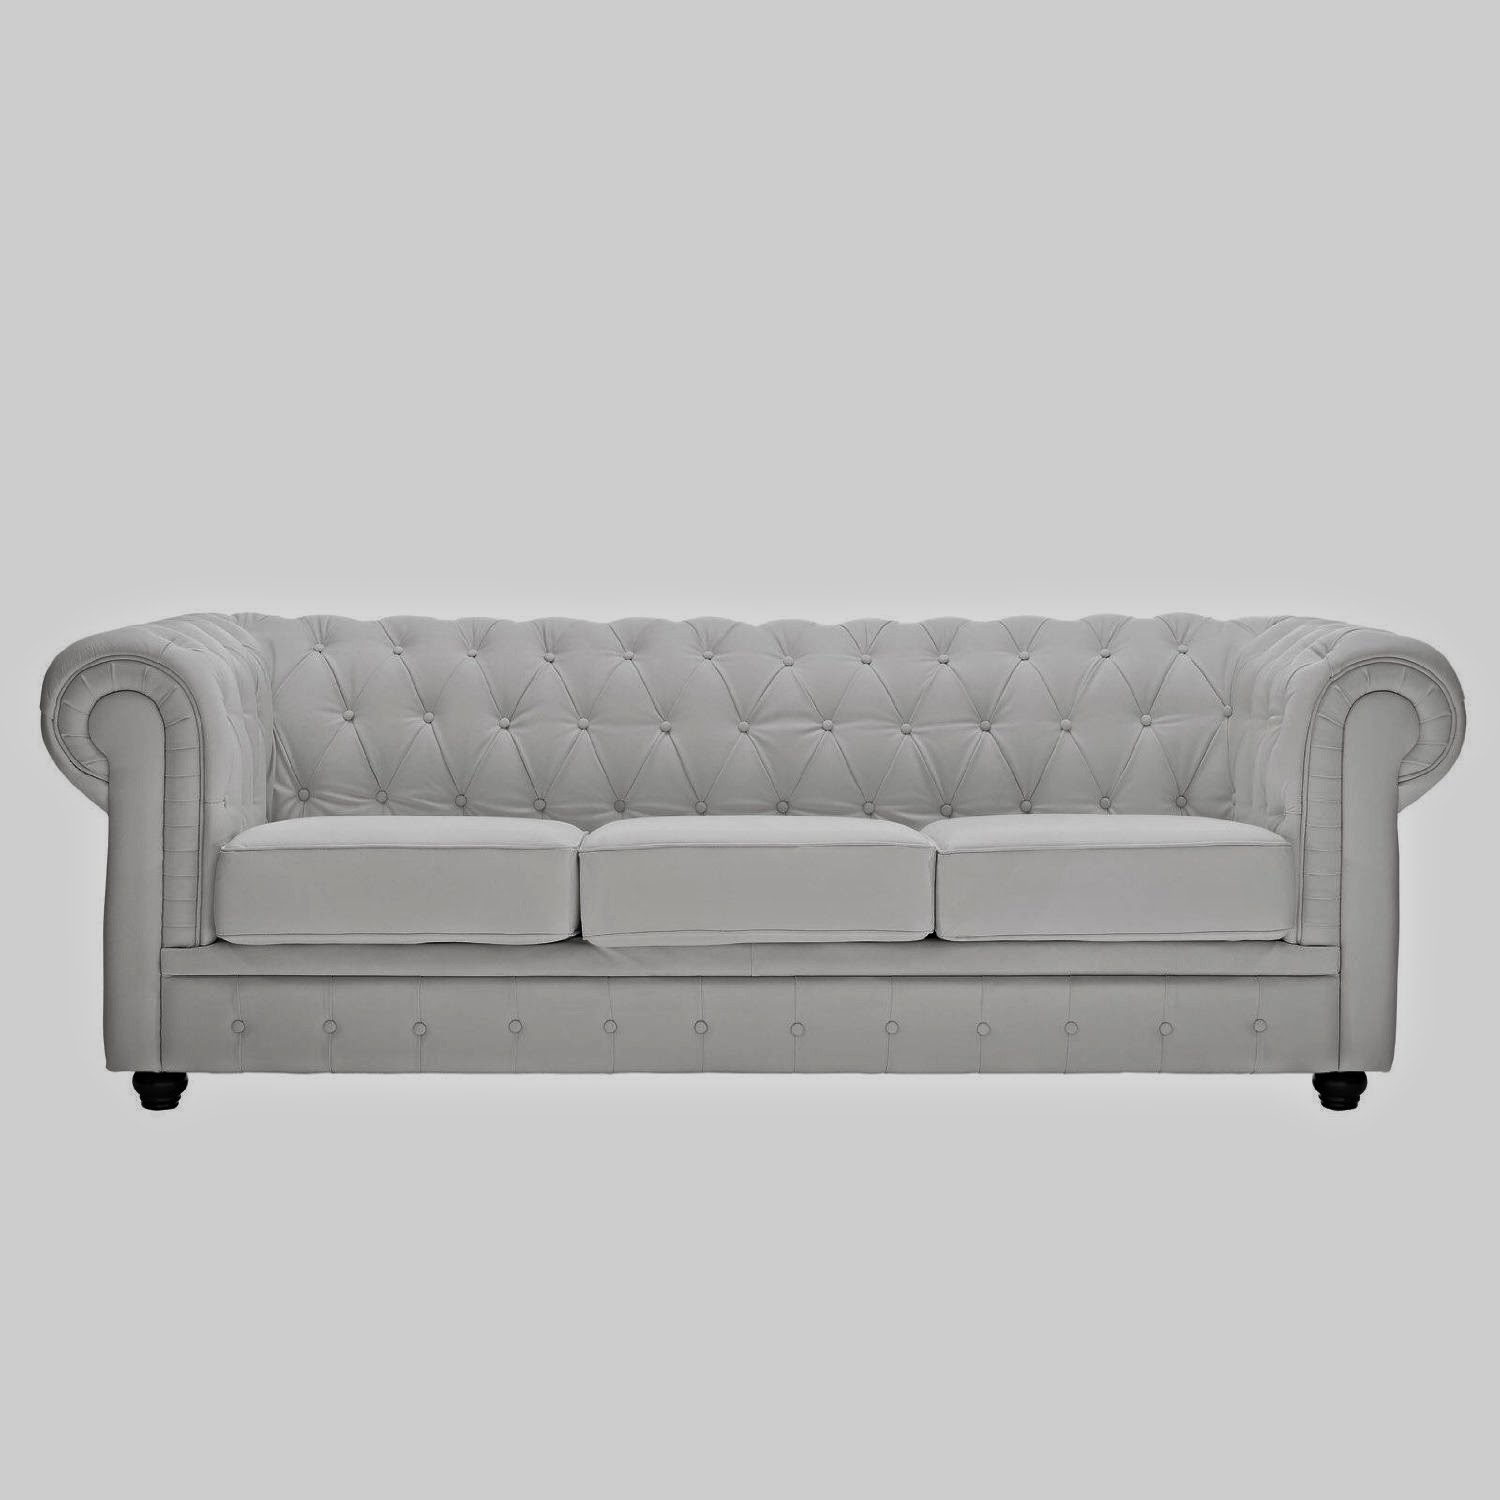 Chesterfield sofa leather chesterfield sofa Leather chesterfield loveseat